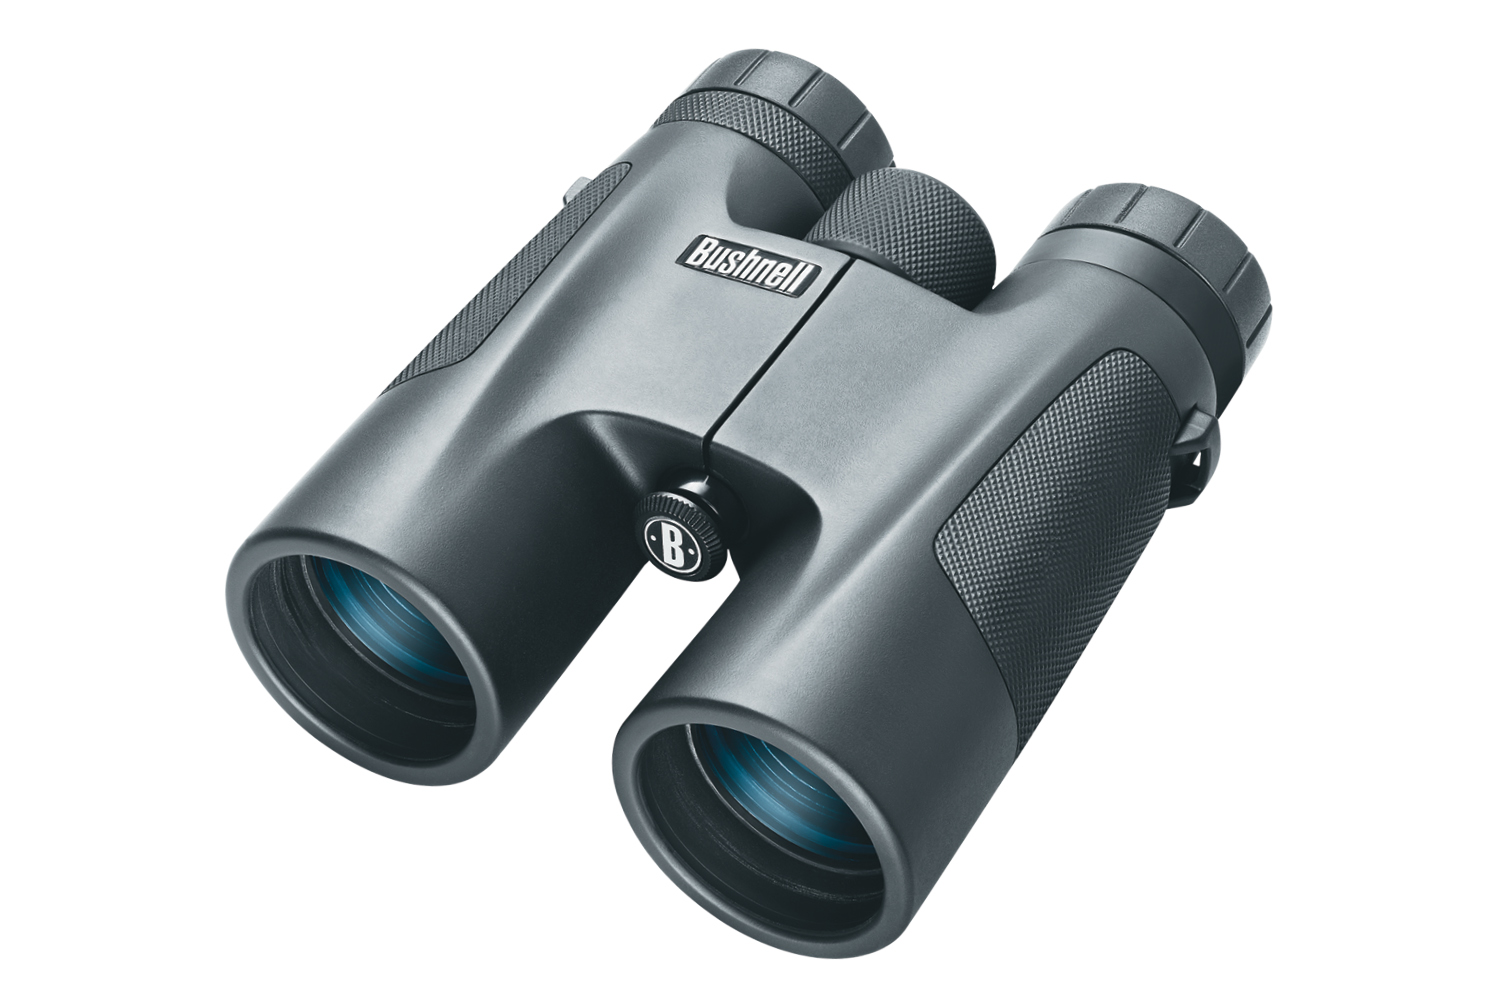 Бинокль Bushnell PowerView ROOF 10x42 бинокль carl zeiss 10x42 hd conquest